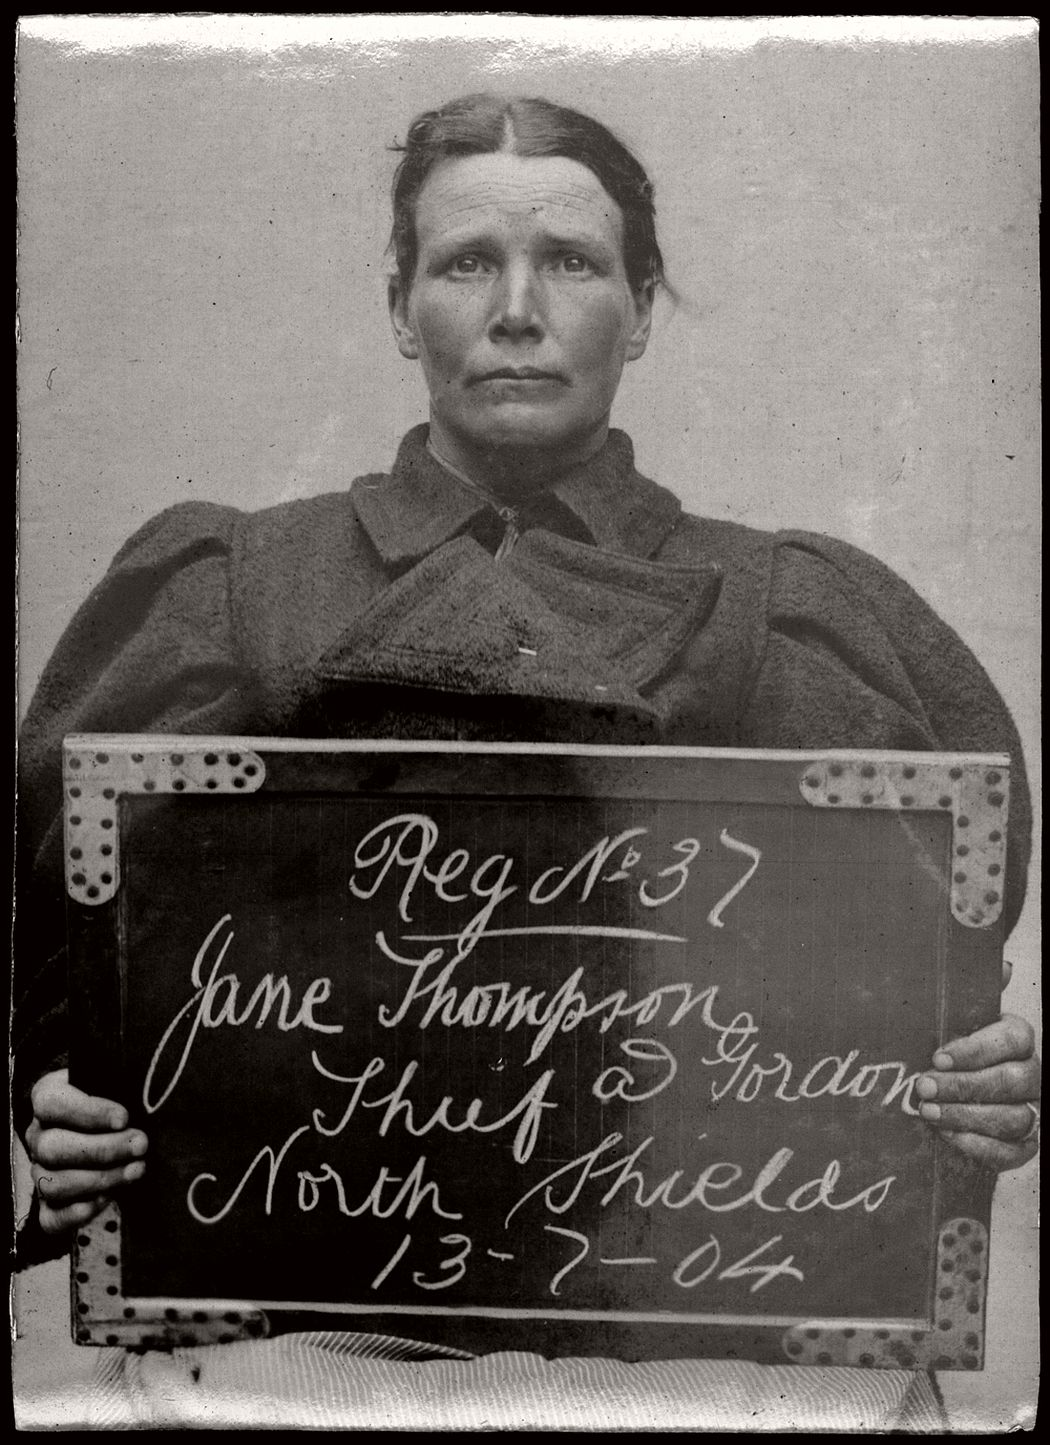 vintage-mug-shot-of-women-criminals-from-north-shields-1903-1905-15